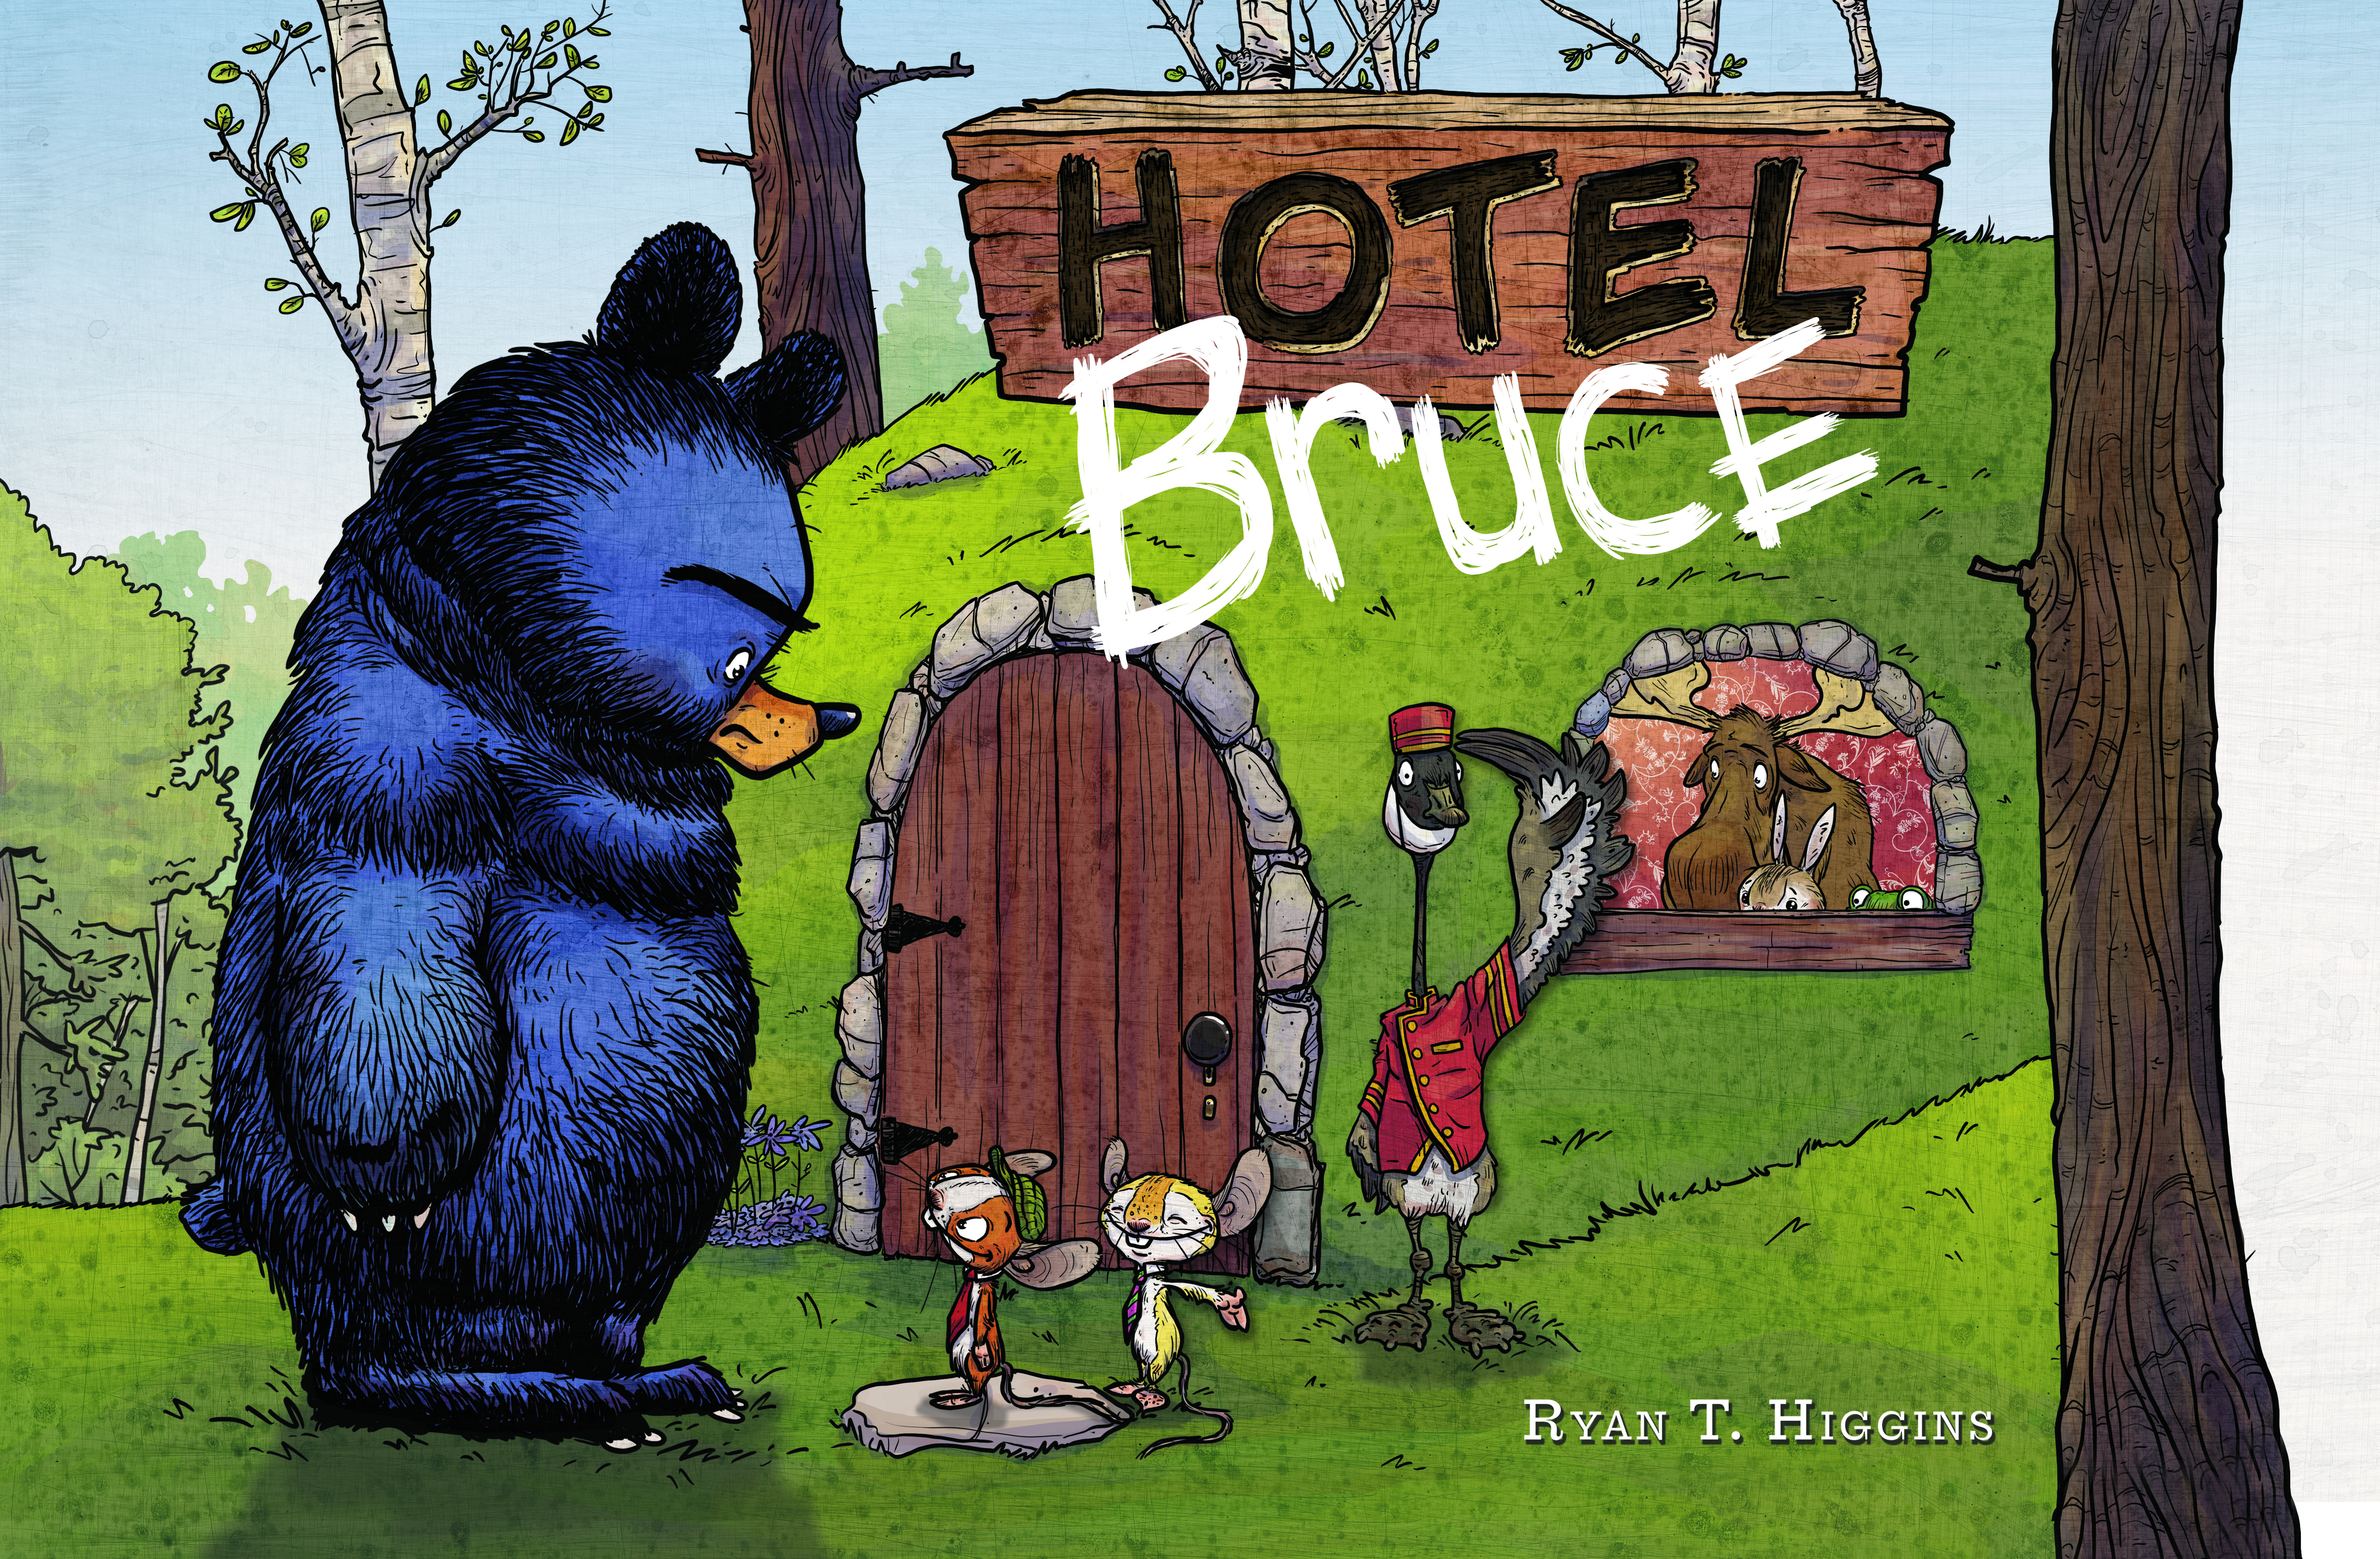 Check in for a relaxing night at Hotel Bruce! Giveaway